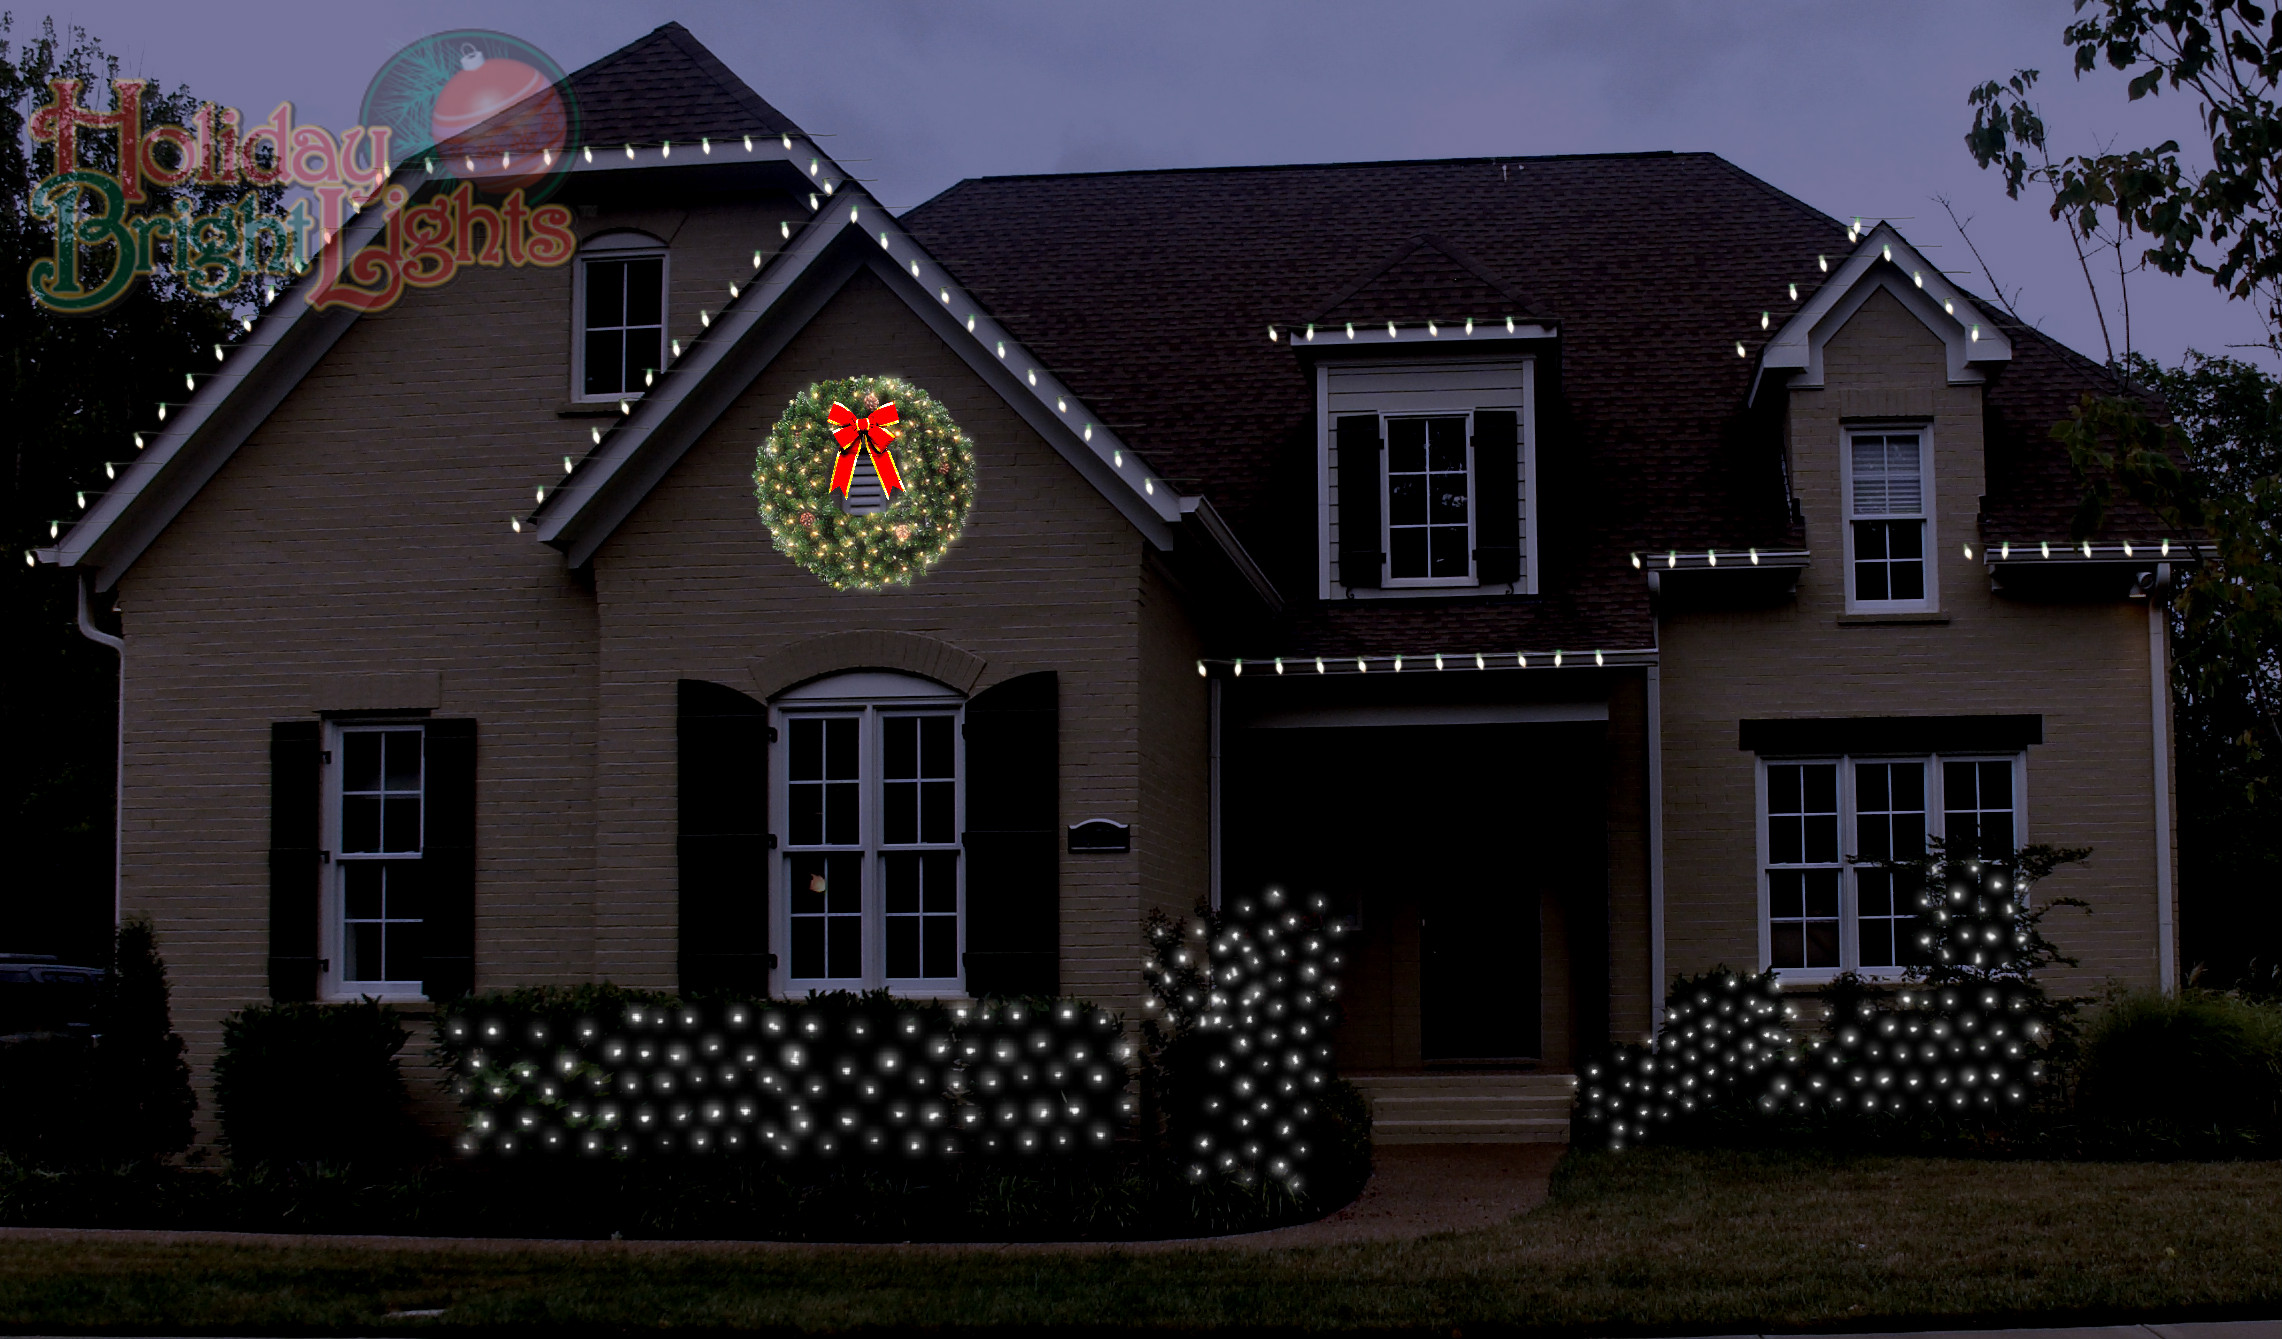 c9 outdoor christmas lights photo 1 - C9 Outdoor Christmas Lights